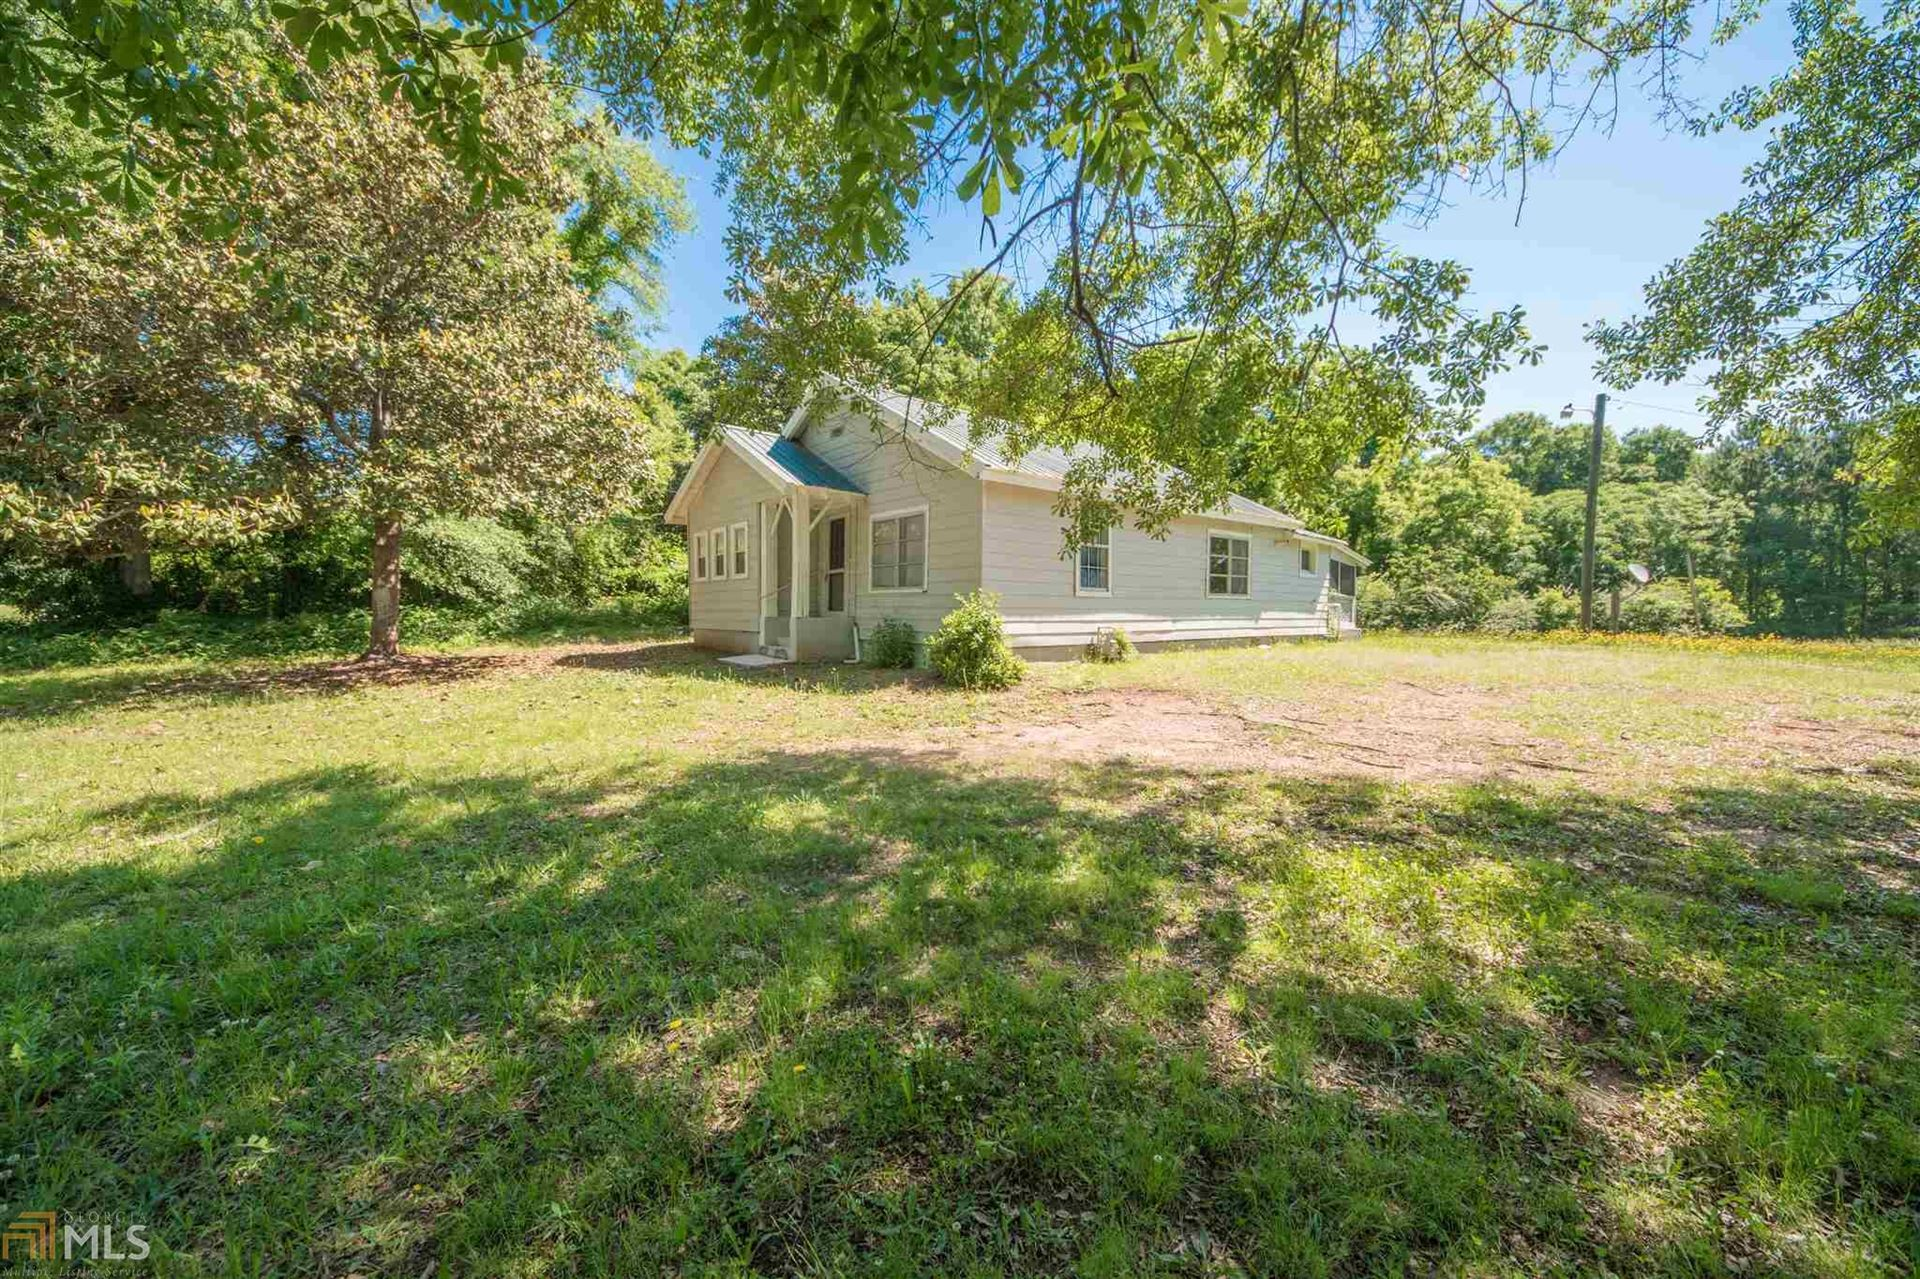 84 Meriwether St, Grantville, GA 30220 - MLS#: 8897796